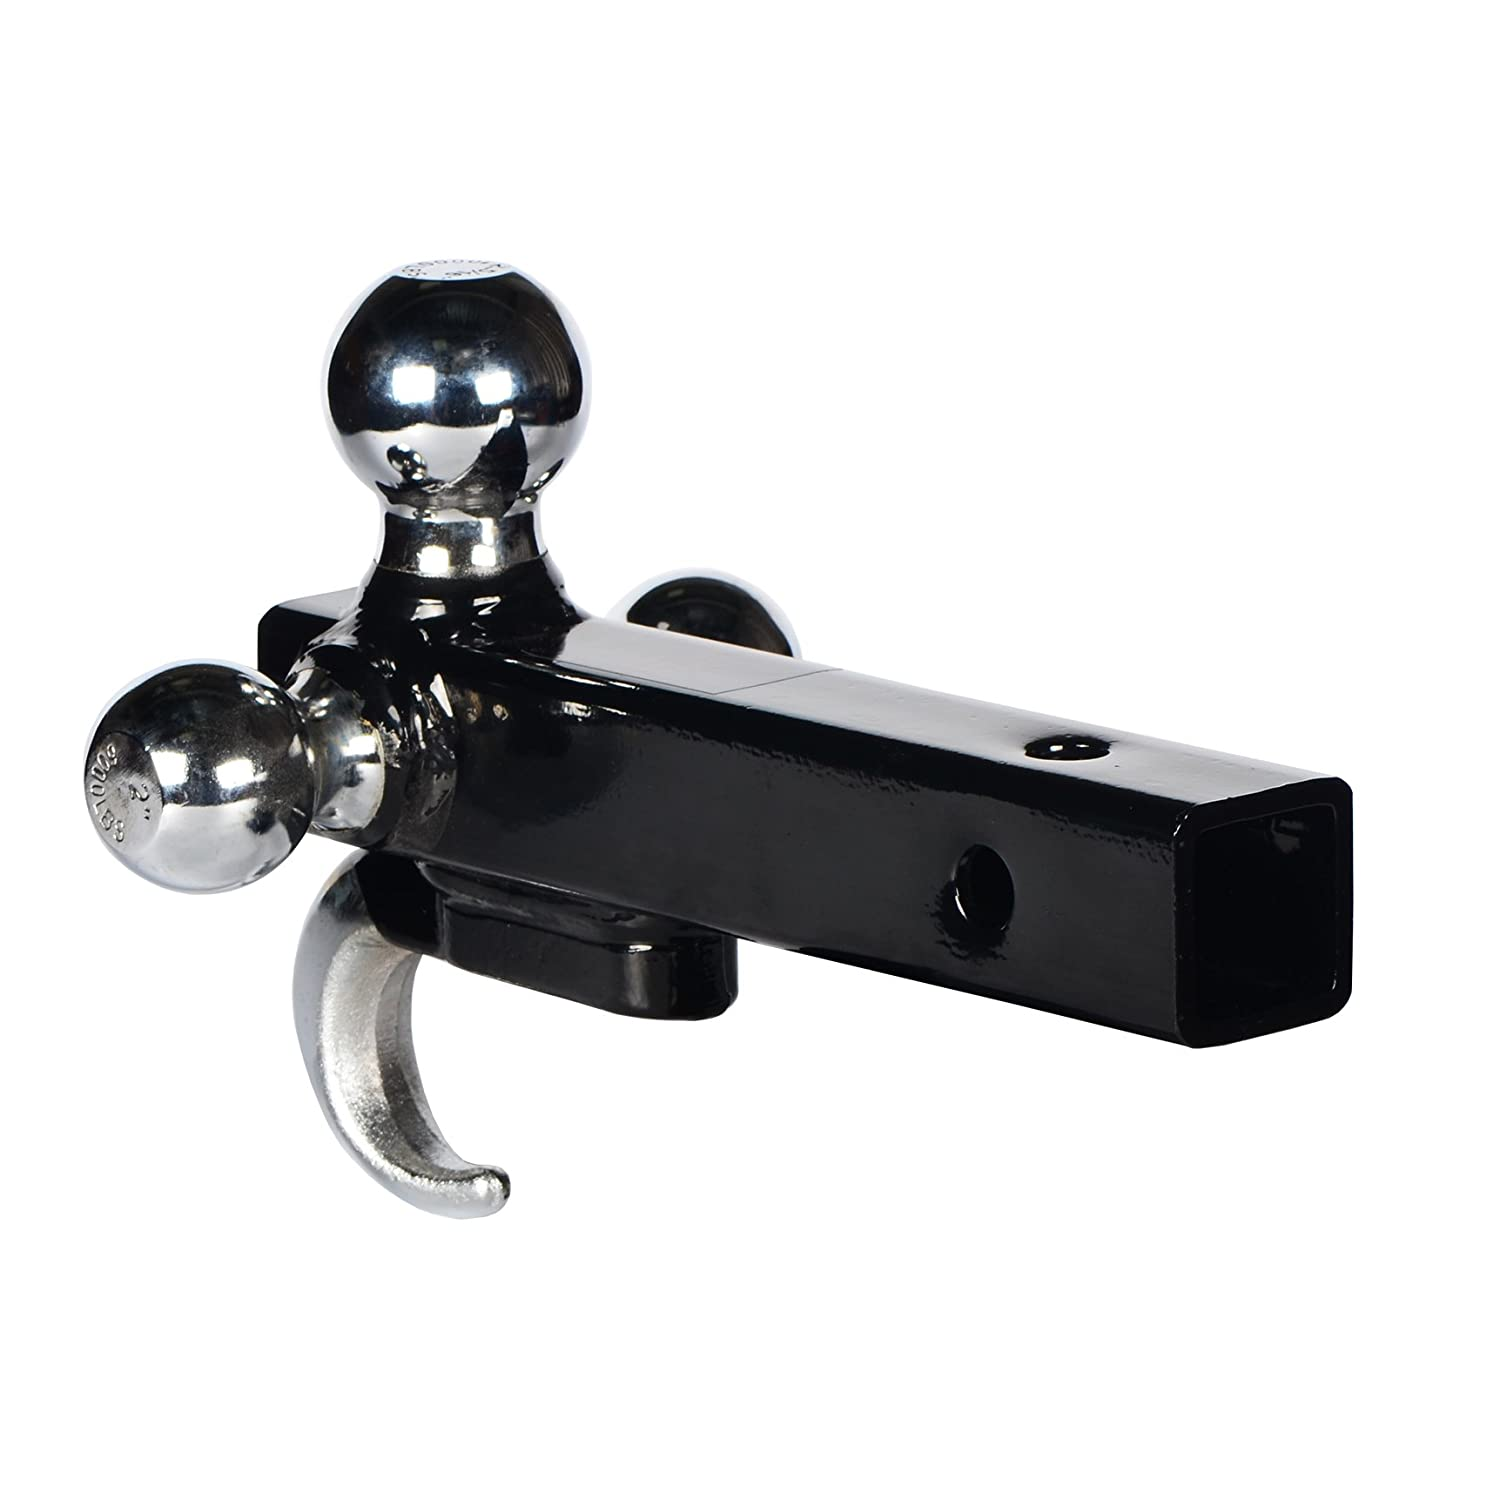 EASTOW LY814 Trailer Hitch Tri-Ball Mount with Hook,(1-7/8', 2'& 2-5/16'), 2' Receiver, Hollow Shank, Chrome Plated Balls,2000Lb, 6000lb, 10.000lb Capacity (1-7/8 2& 2-5/16) 2 Receiver